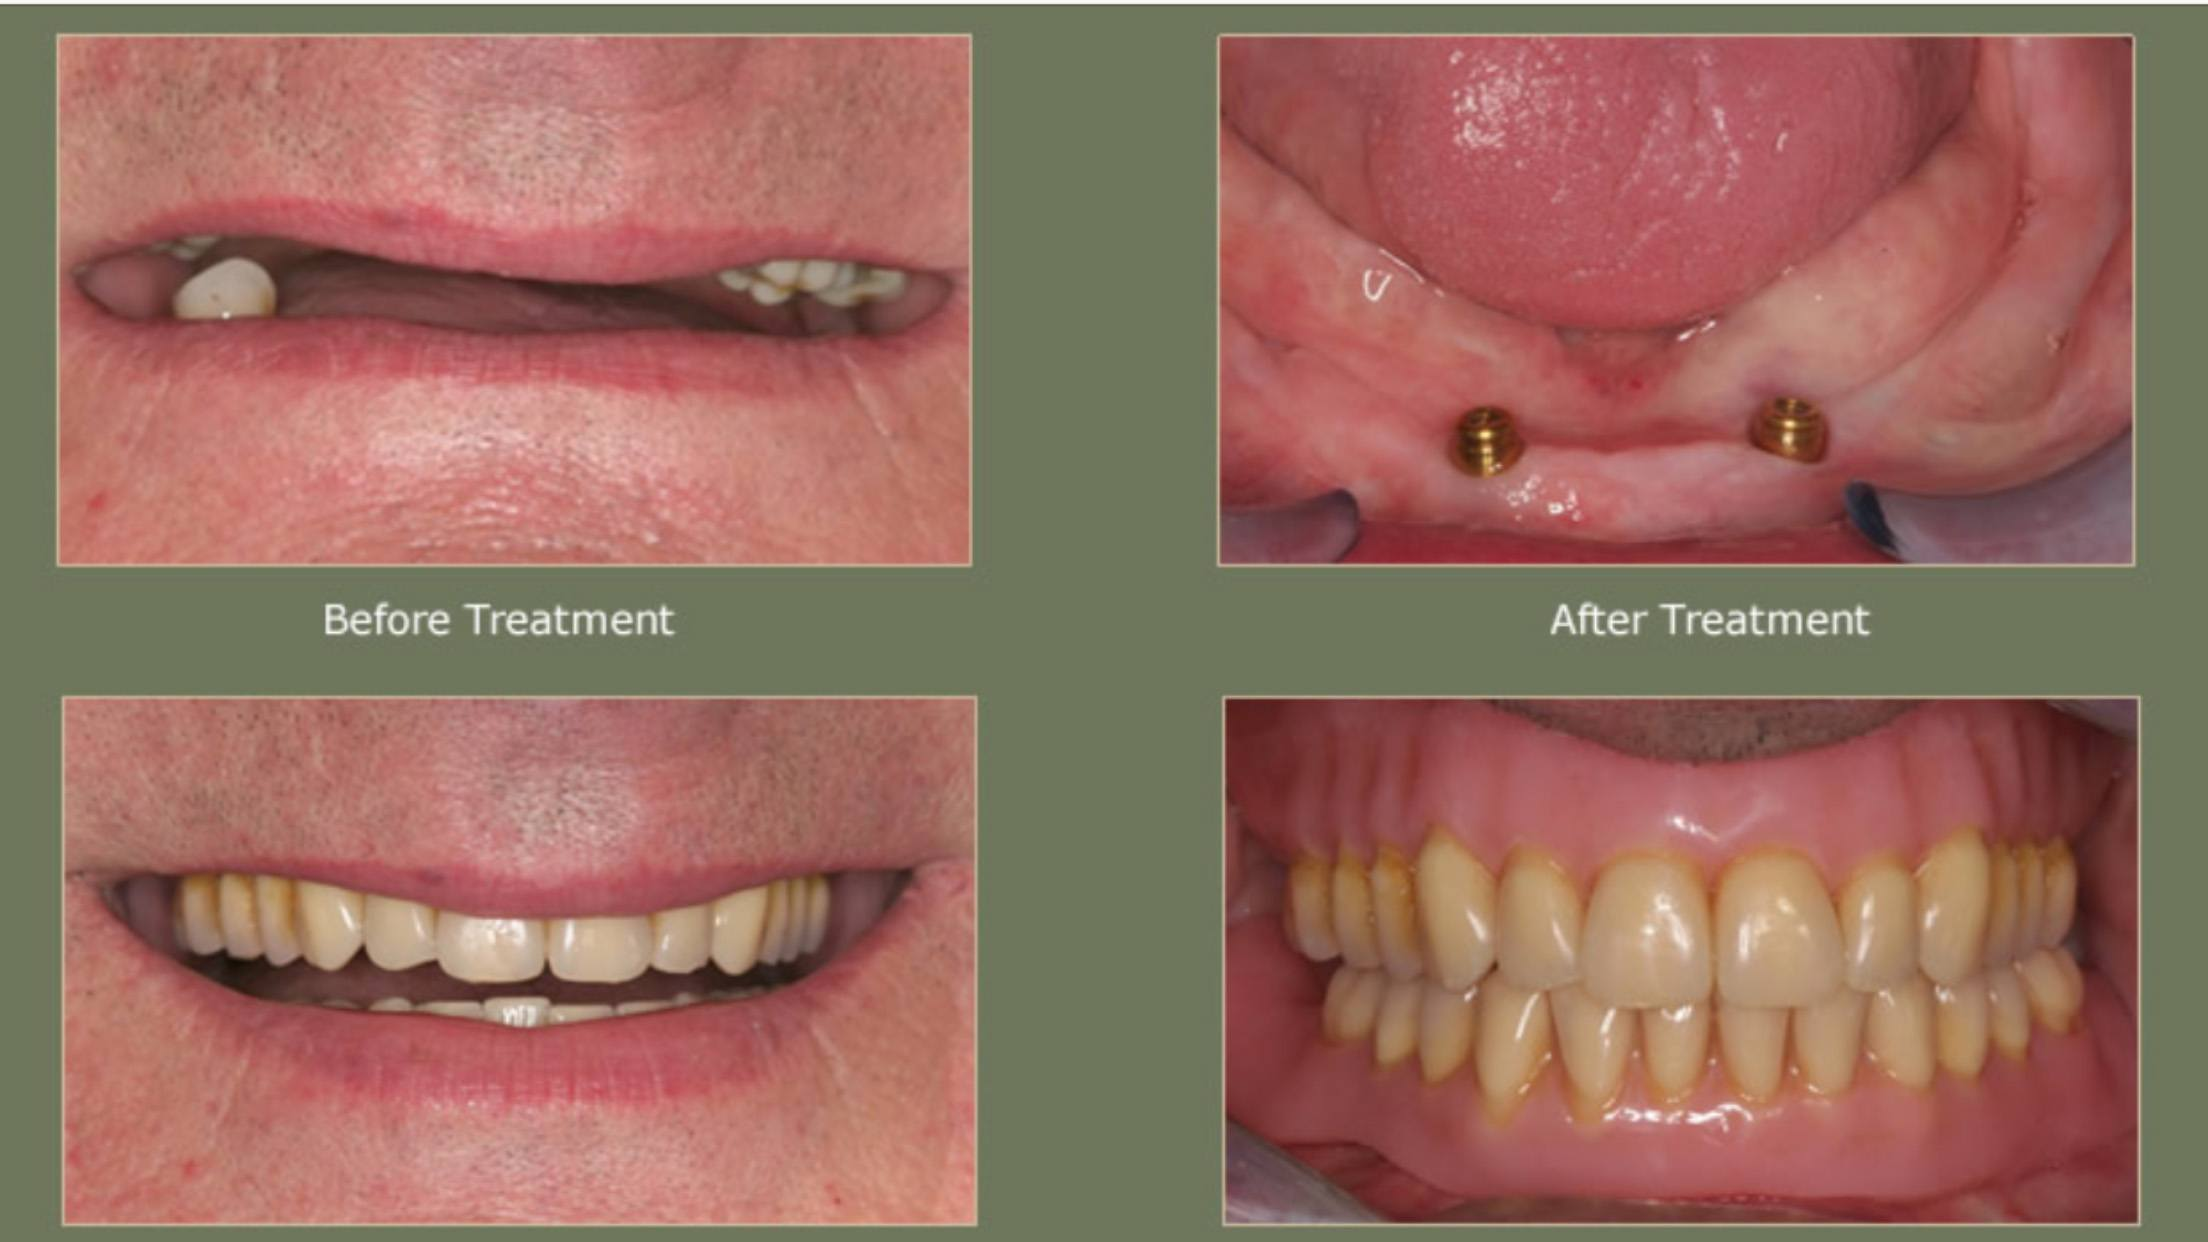 Examples of Dentures